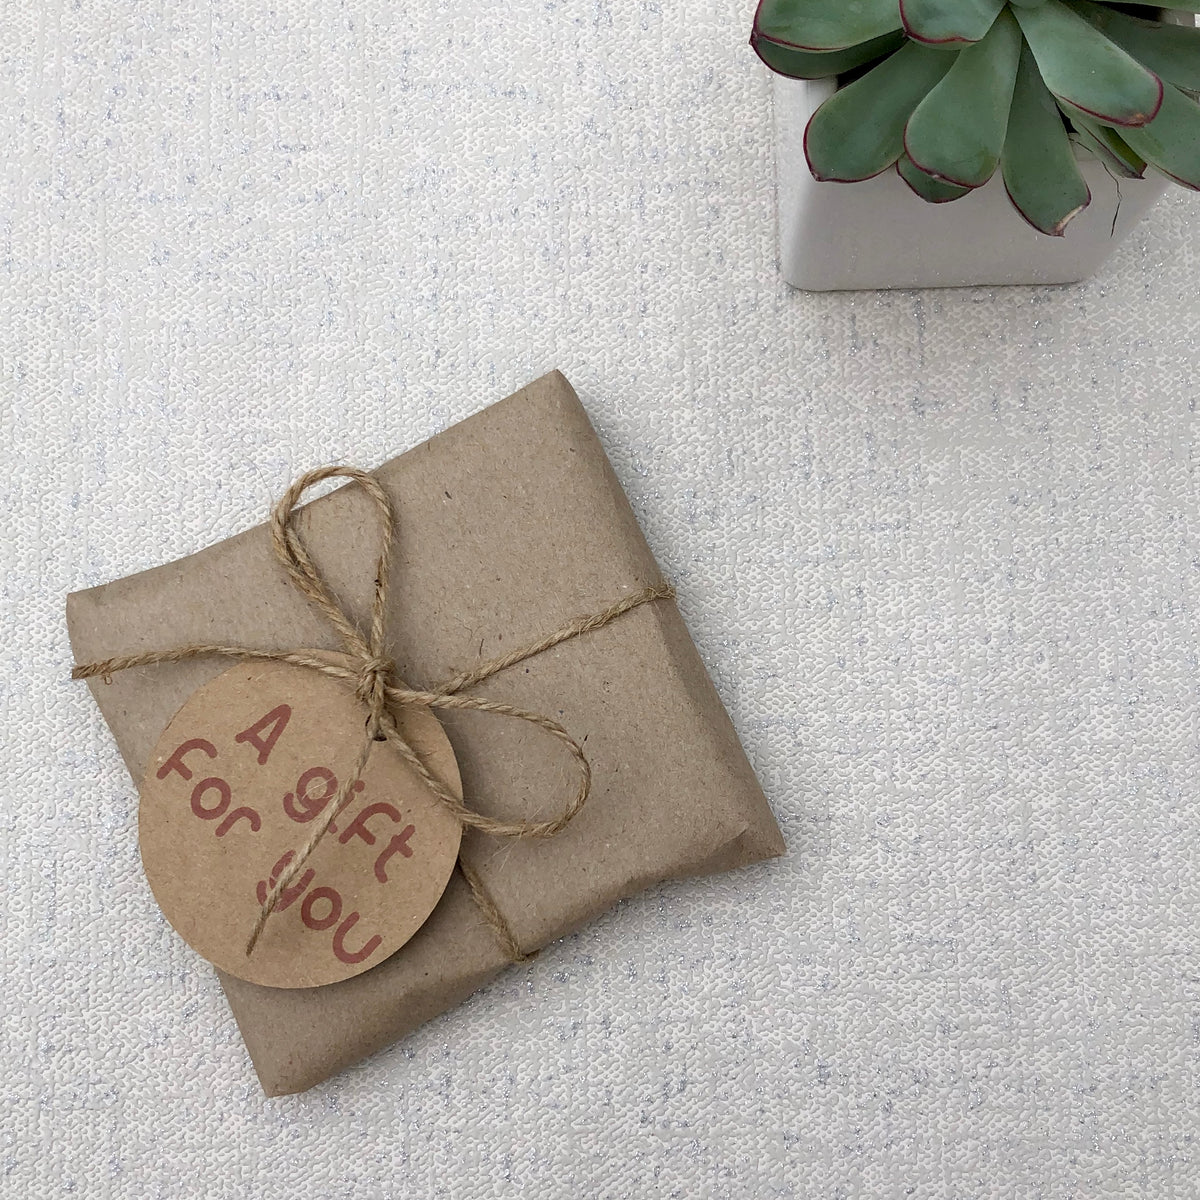 Wood slice photo gift wrapped in rustic brown paper and string.